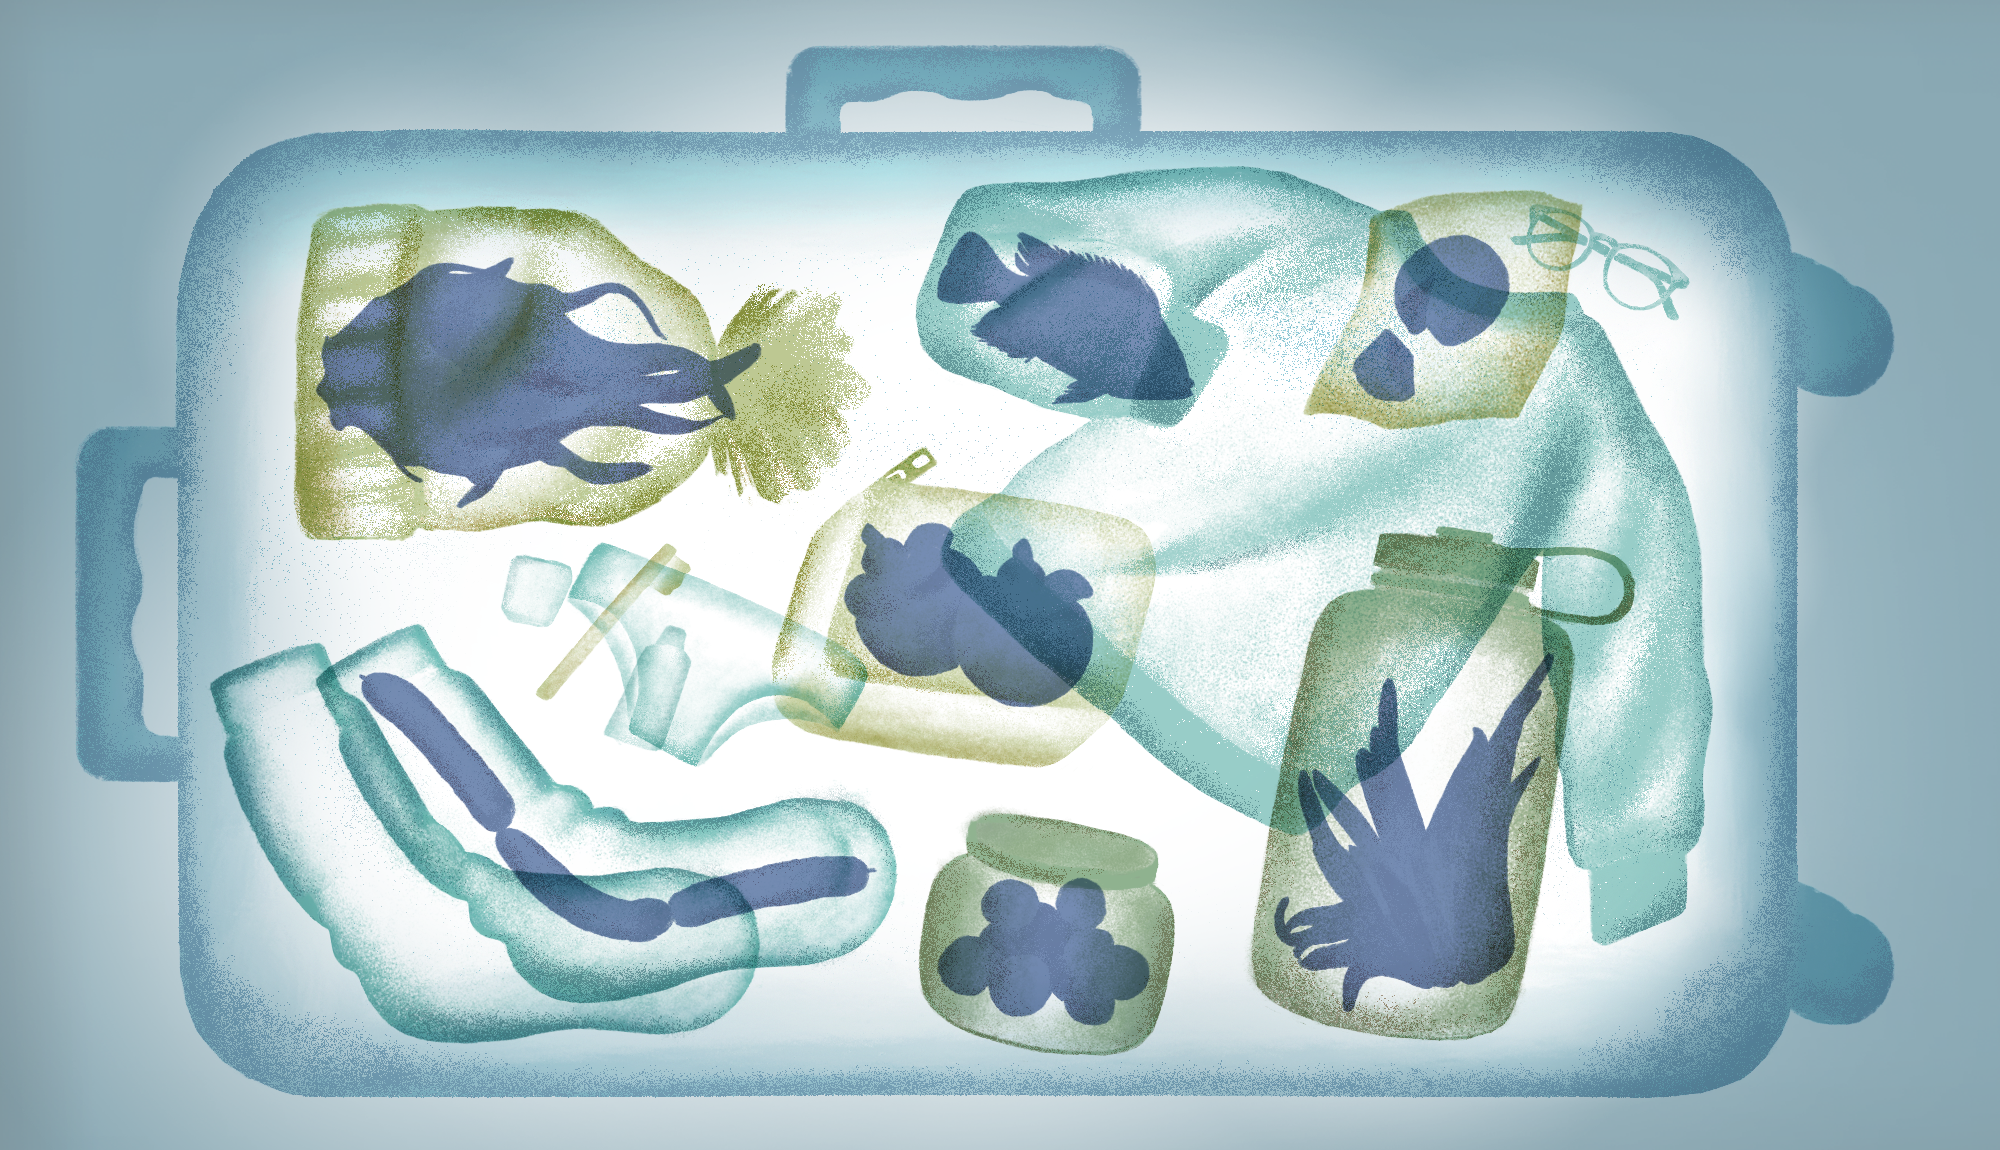 An illustration showing a suitcase as it would look to an airport x-ray machine, with fish, vegetables, and sausage links hidden inside clothing and other items.